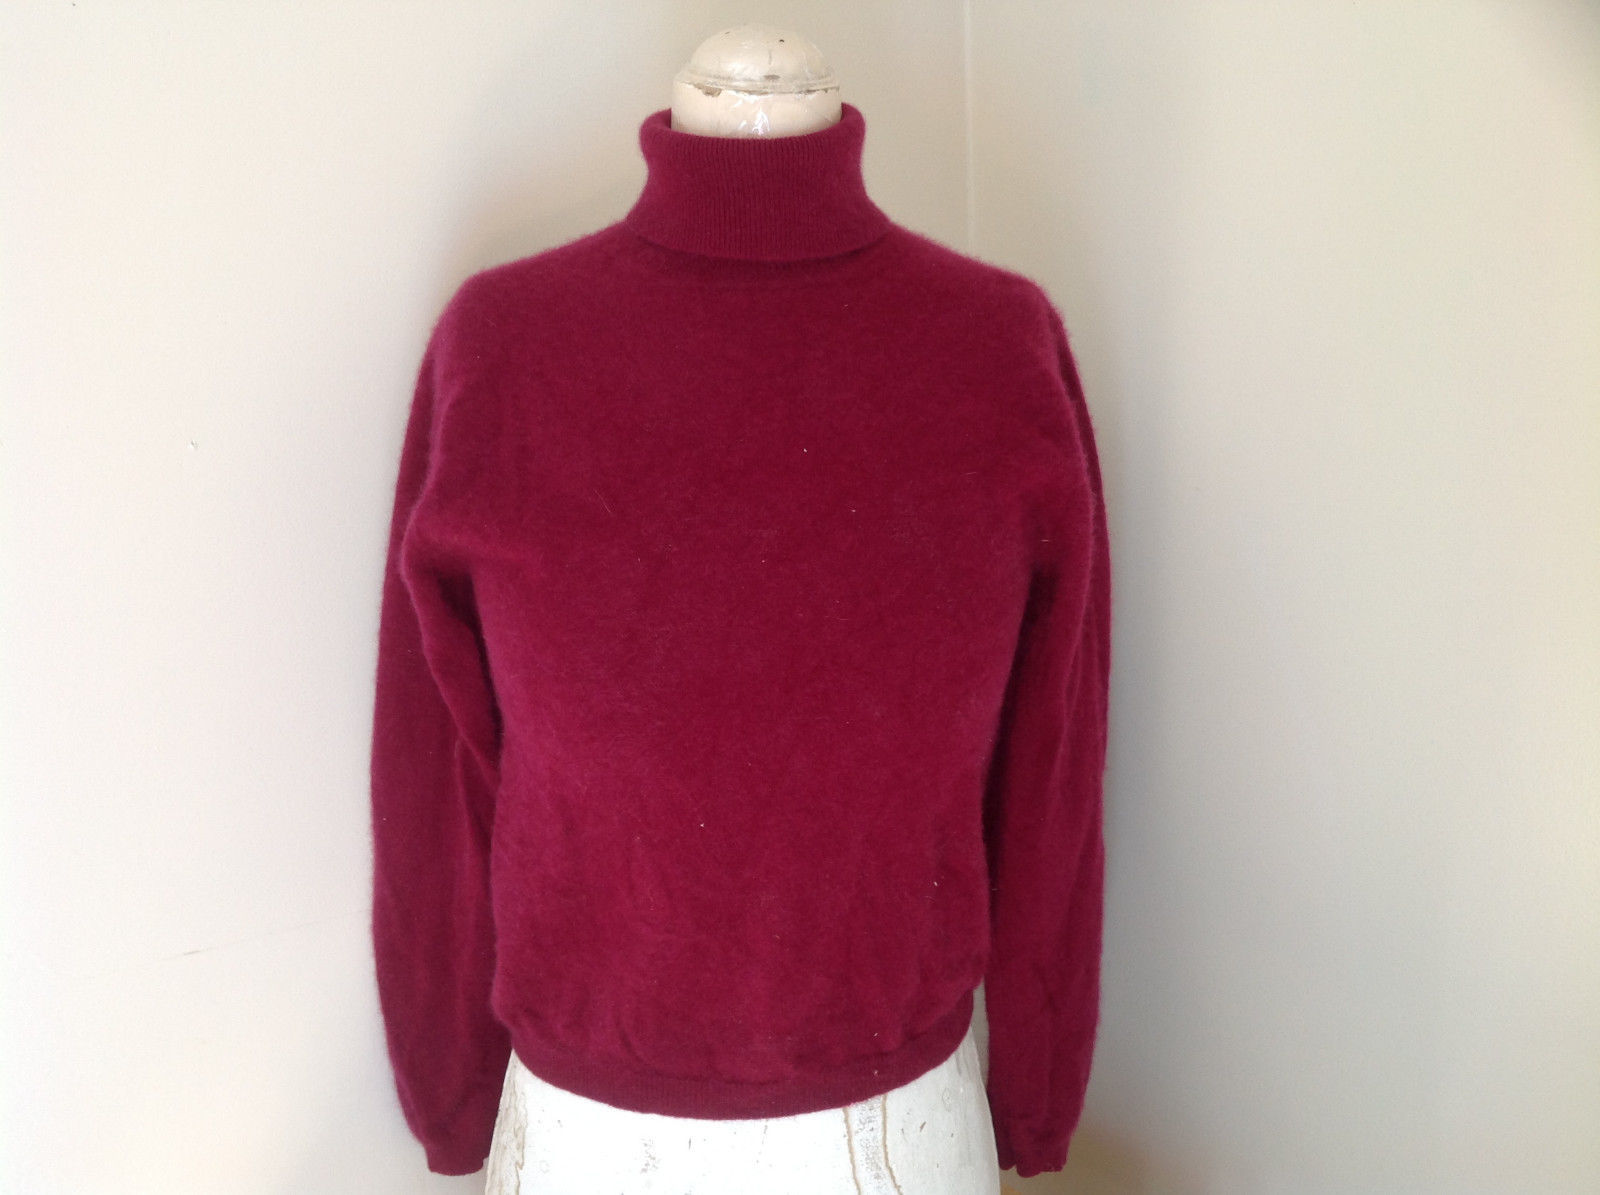 Red Turtleneck Cashmere Sweater by Lord & Taylor Made in Hong Kong Size Small